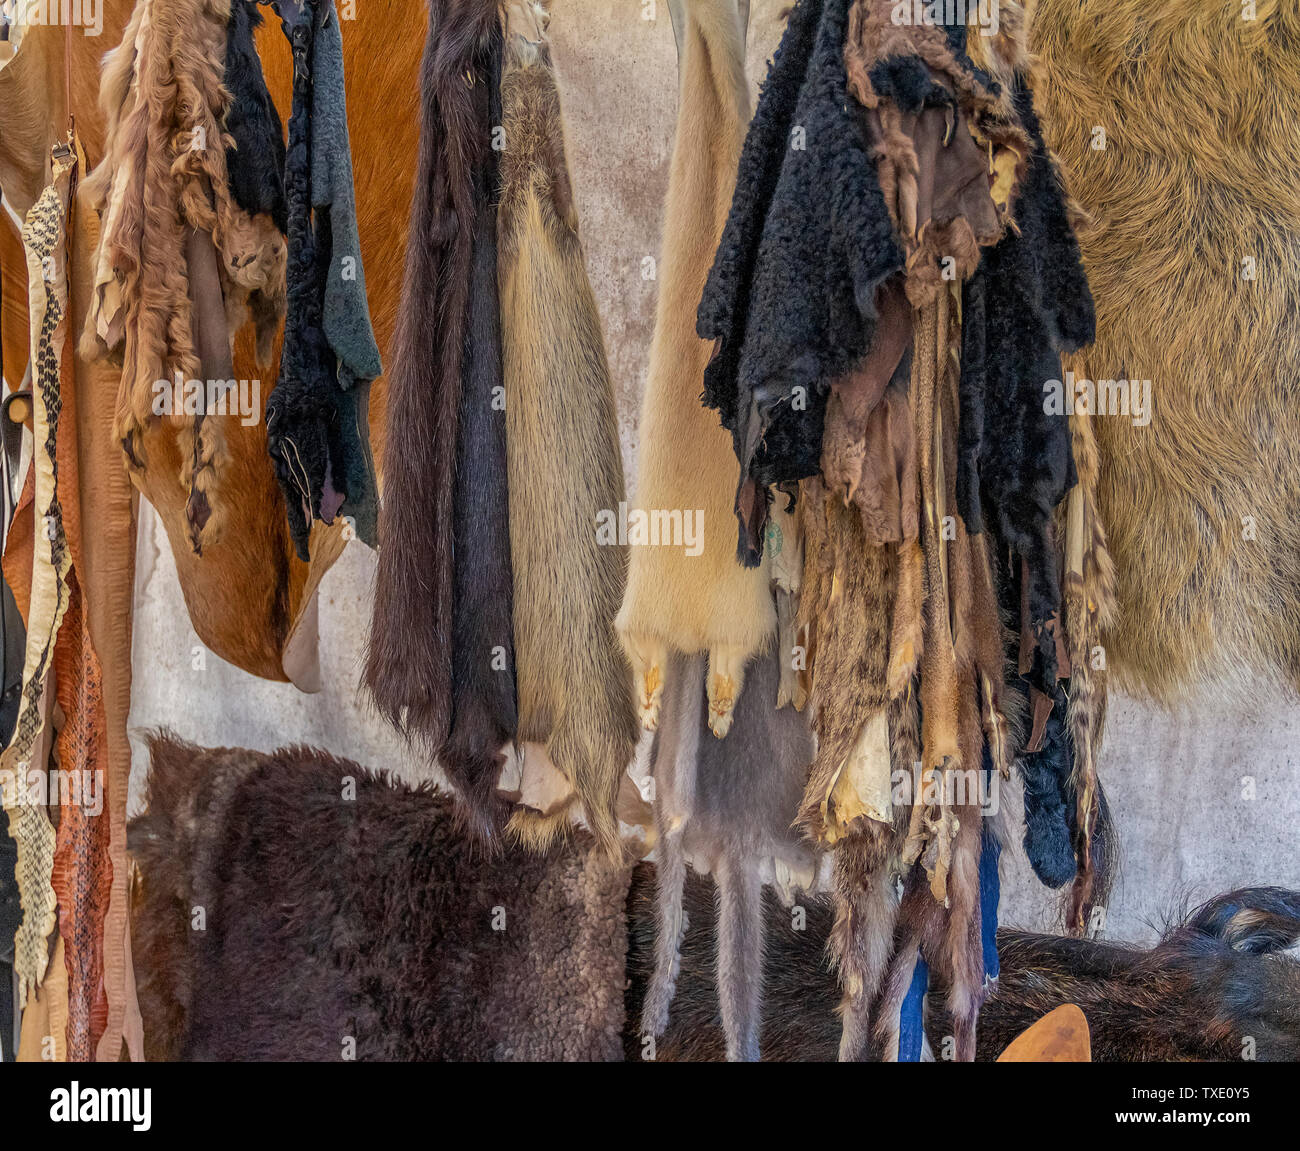 various hanging fur and leather pieces seen at a medieval market - Stock Image